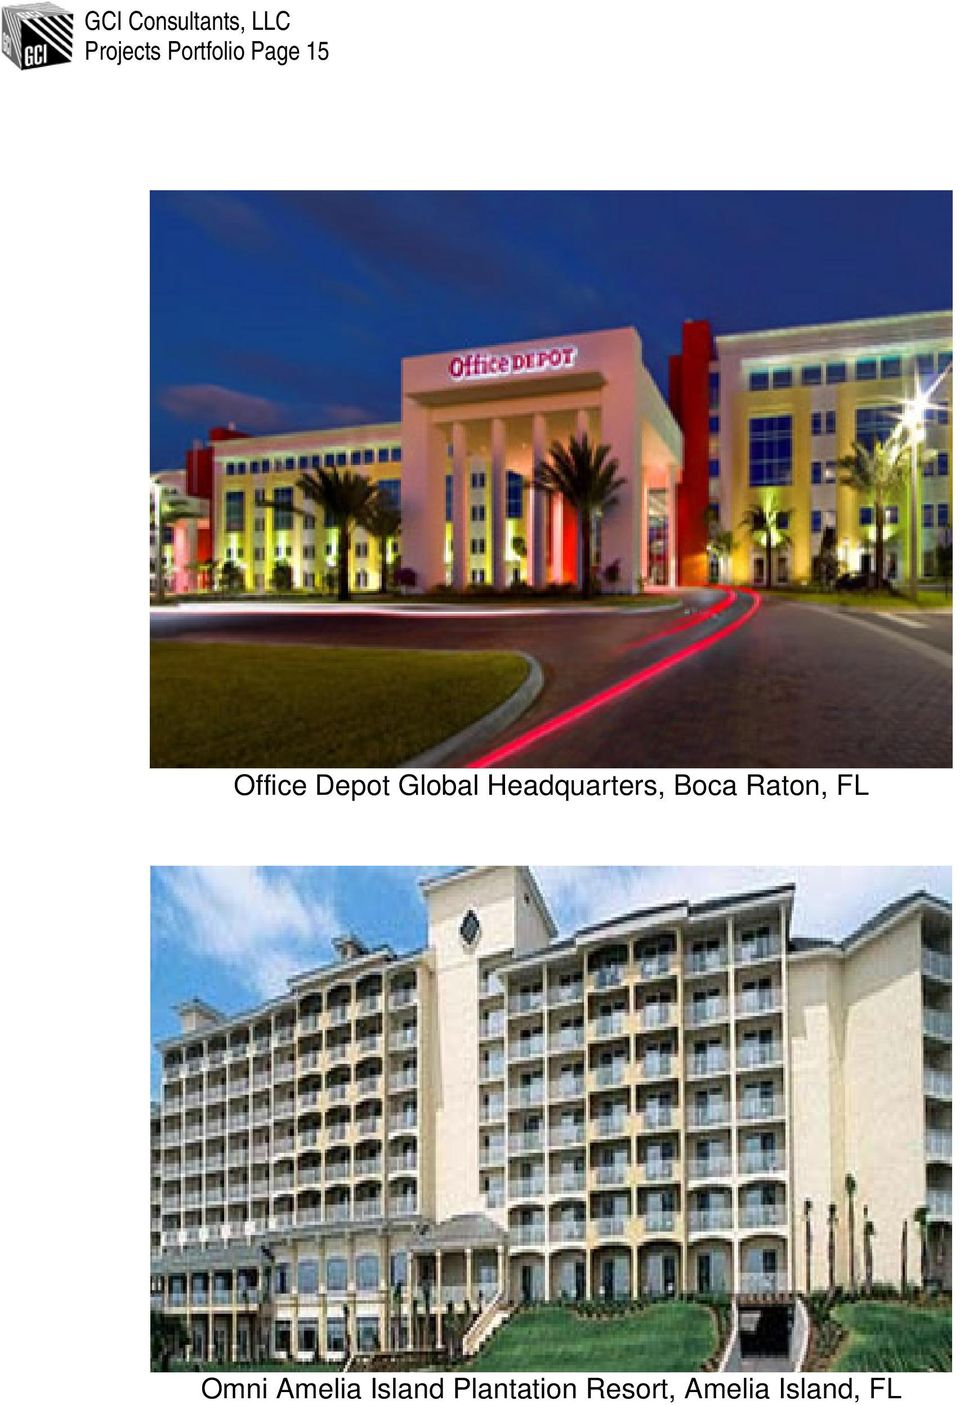 Headquarters, Boca Raton, FL